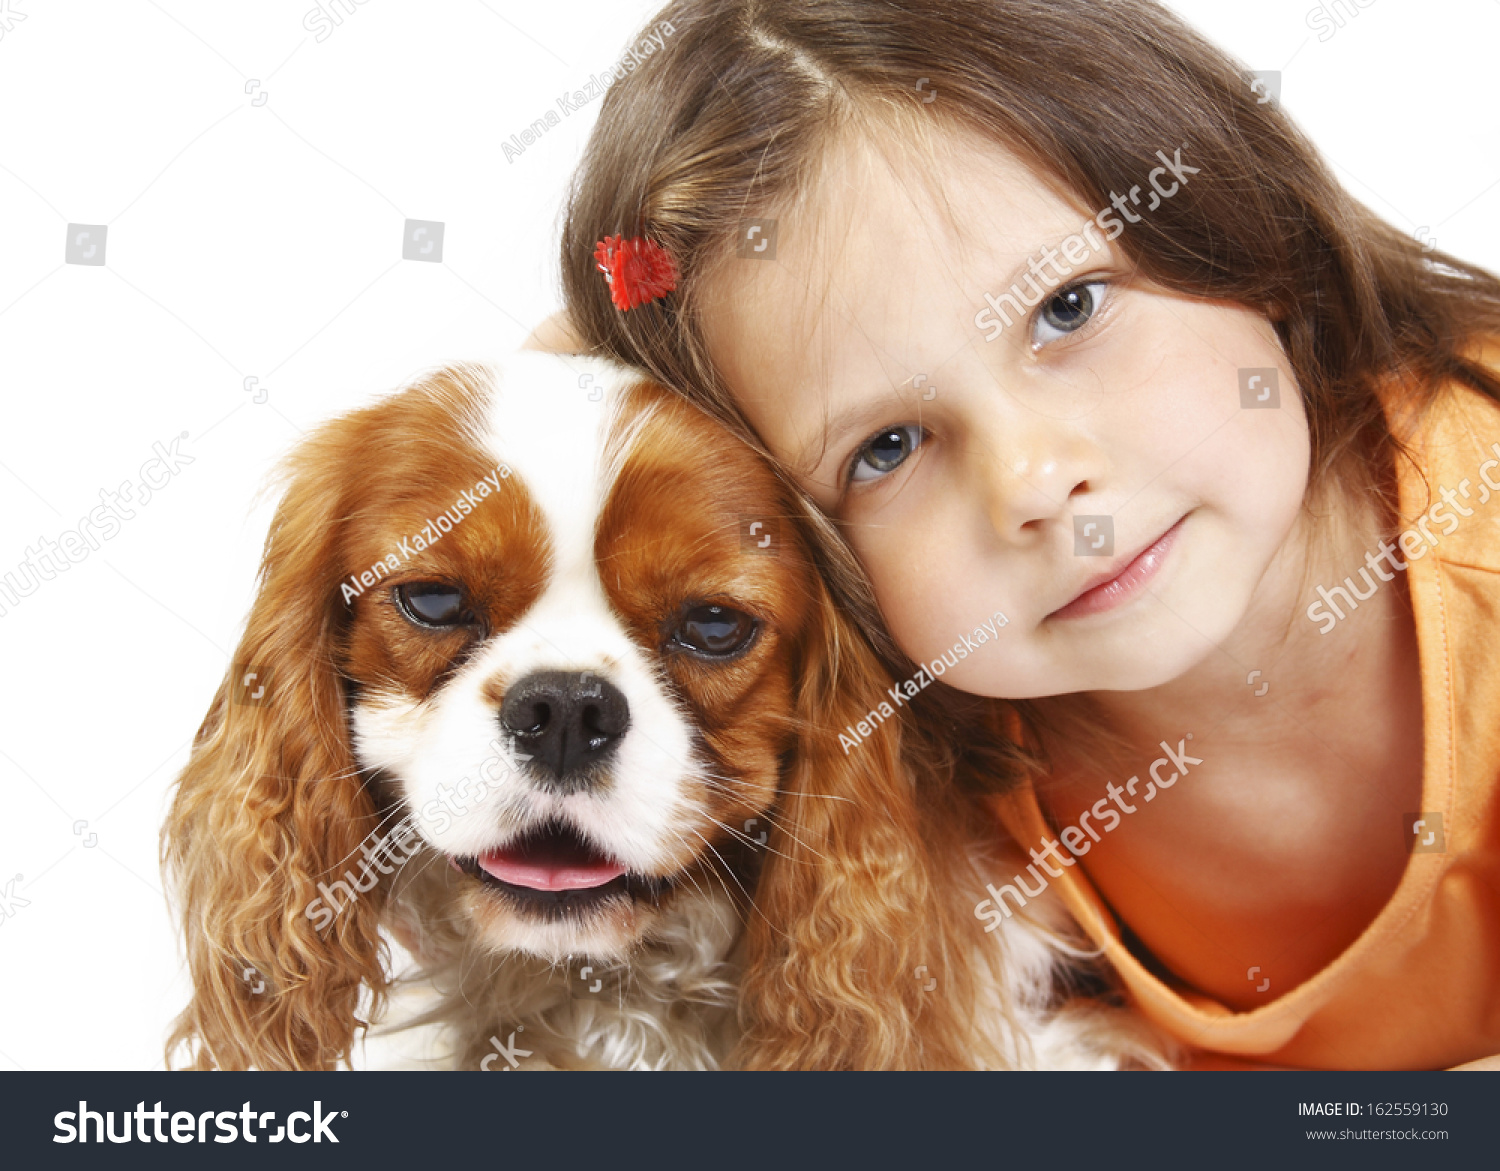 little girl 5 years old and the dog isolated on a white background